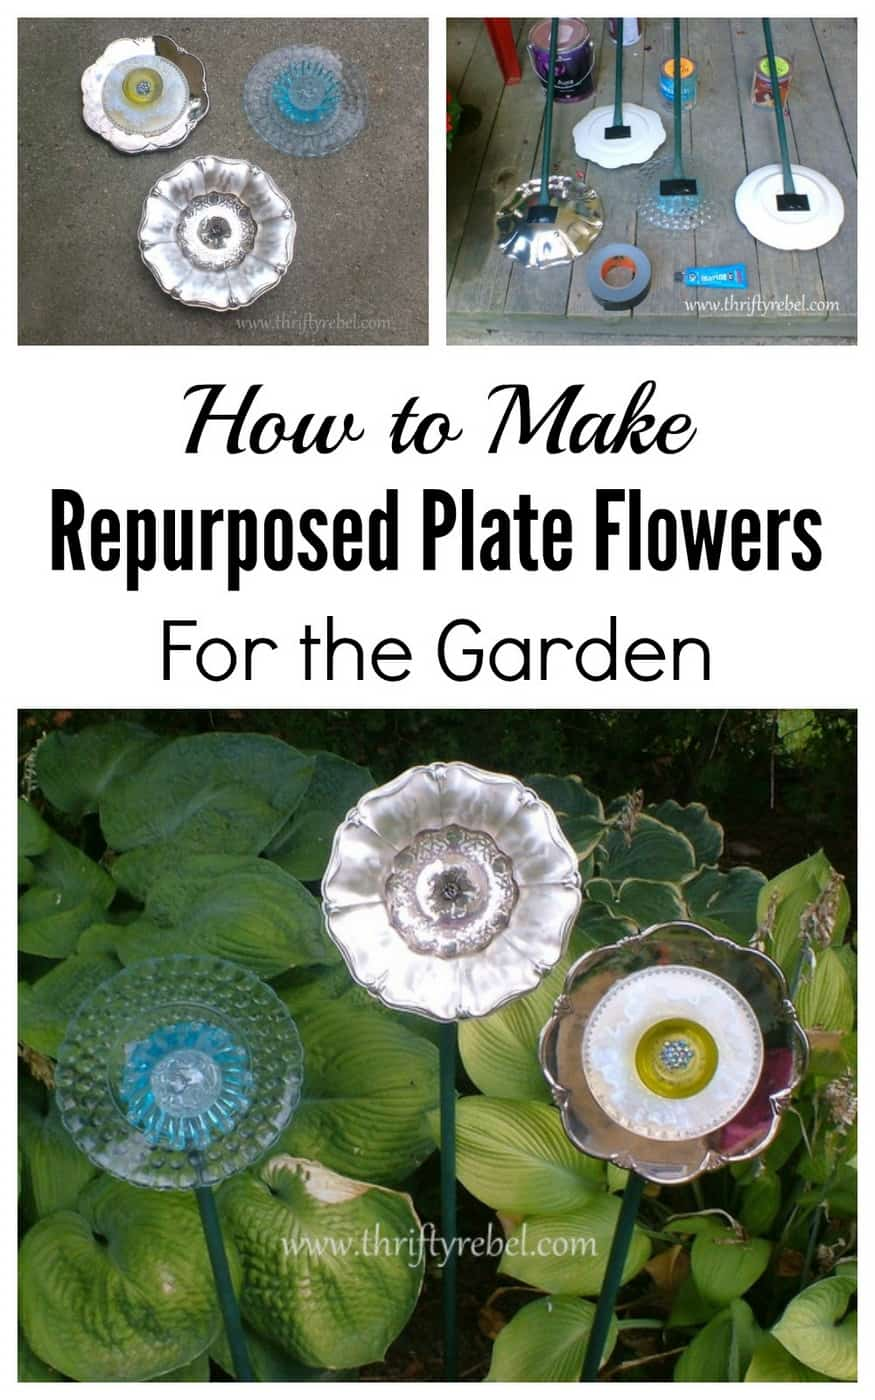 Wall mounnted repurposed plate flowers